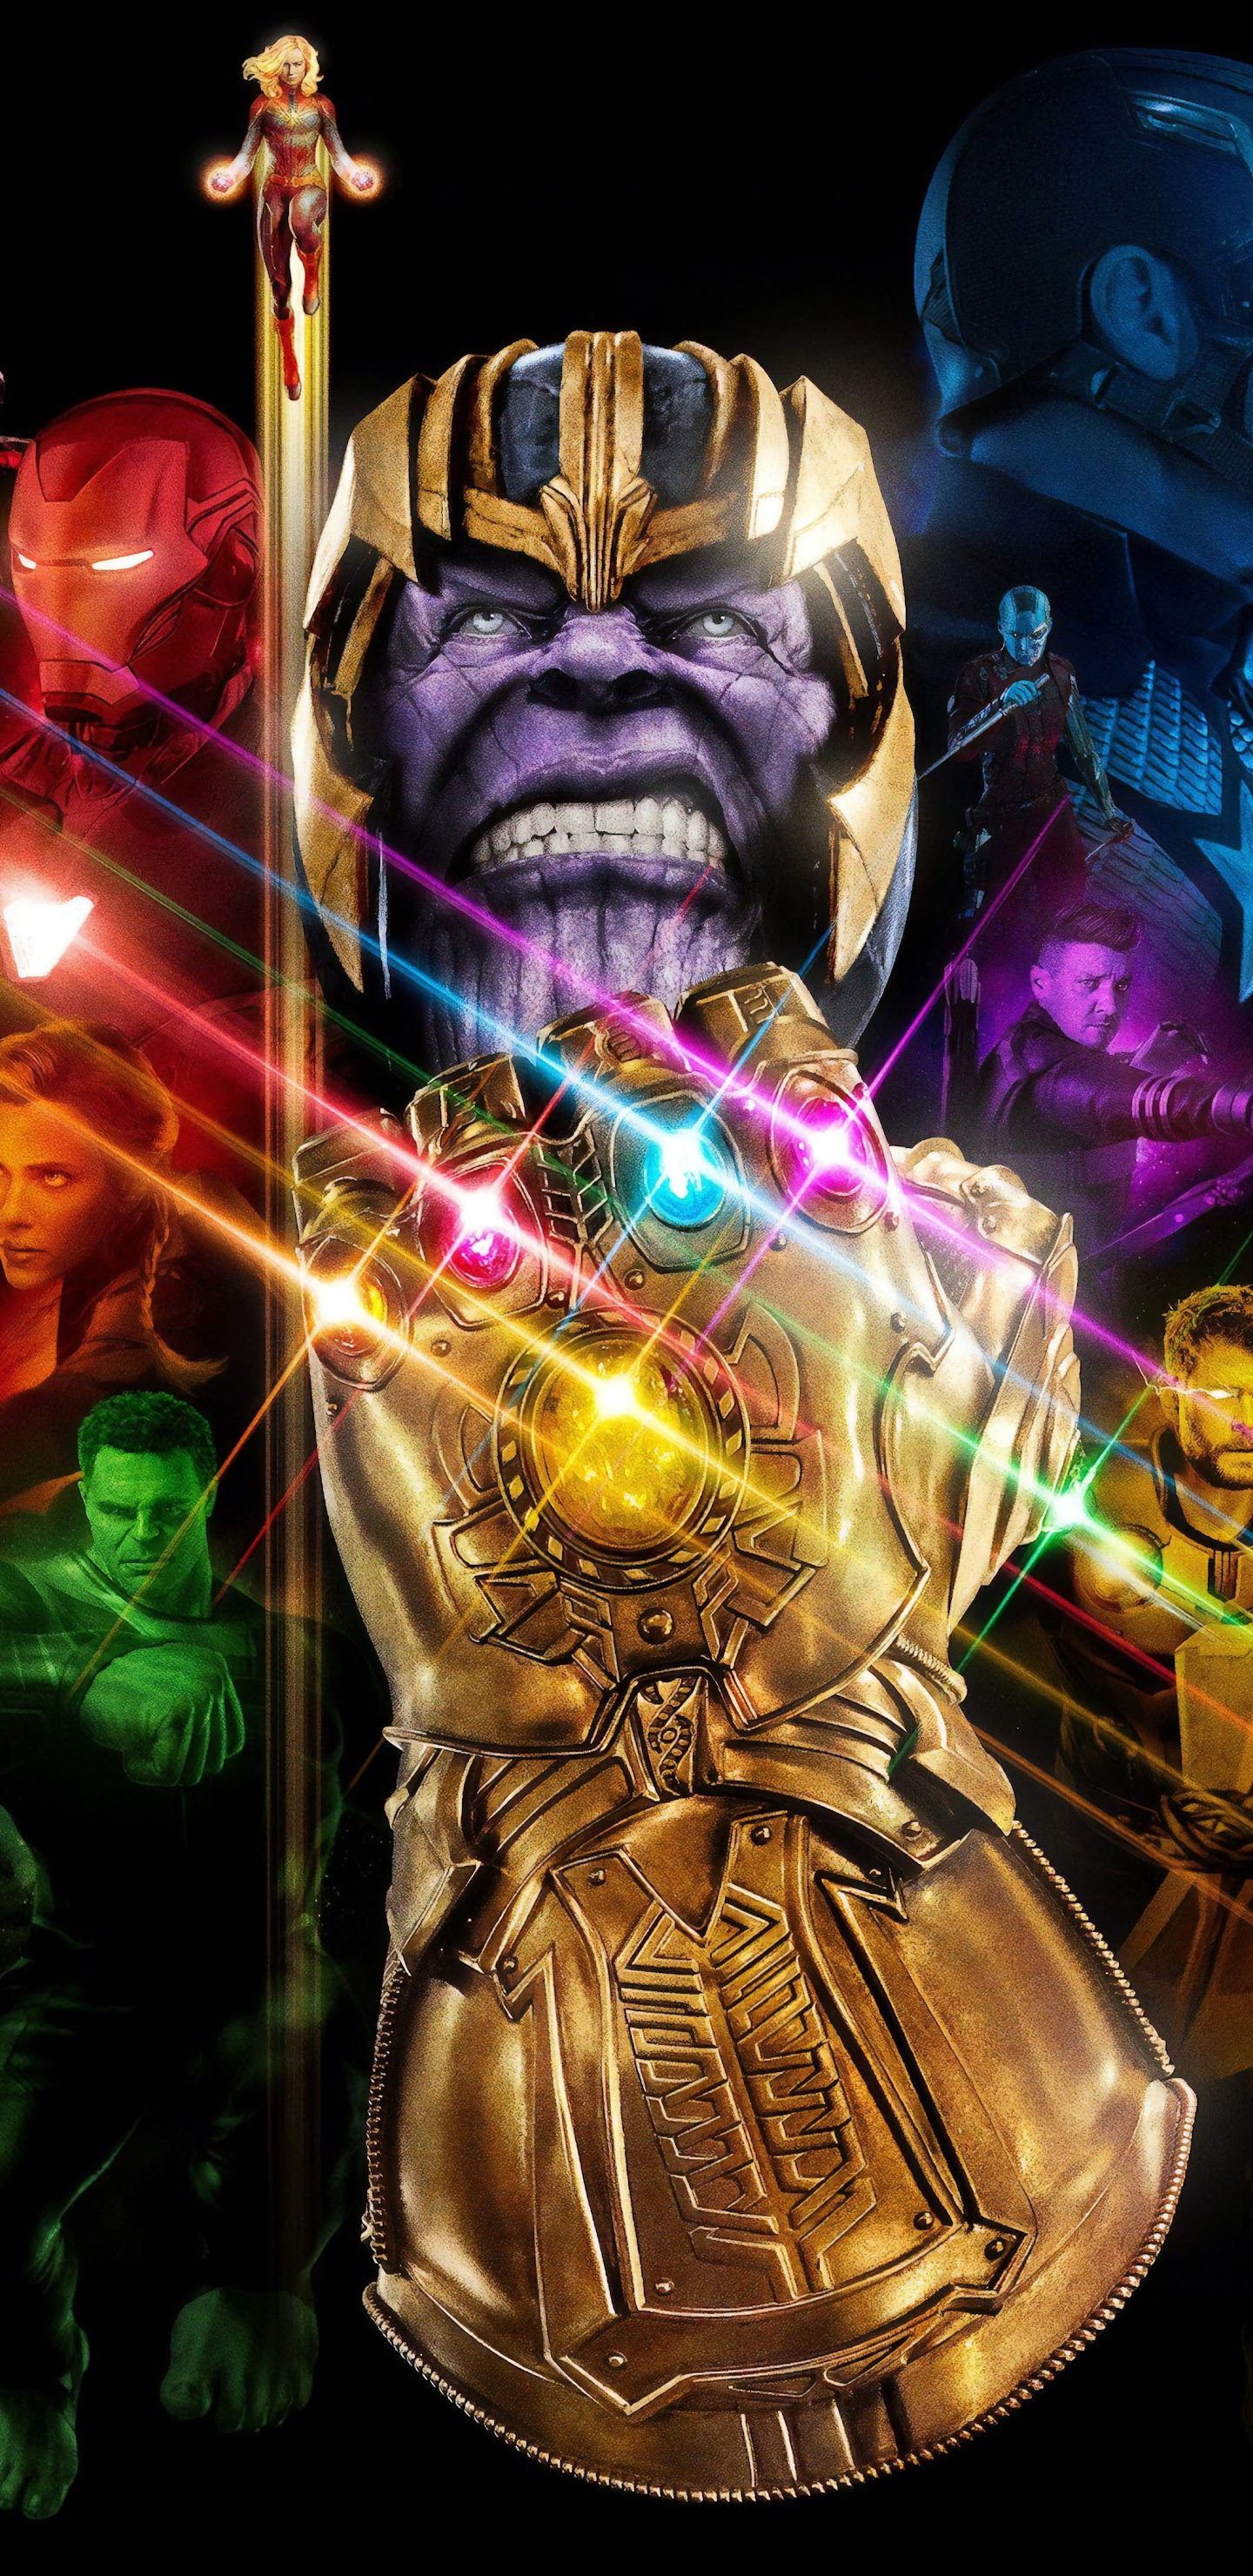 Avengers: Endgame Thanos Infinity Gauntlet 4K Wallpaper #142